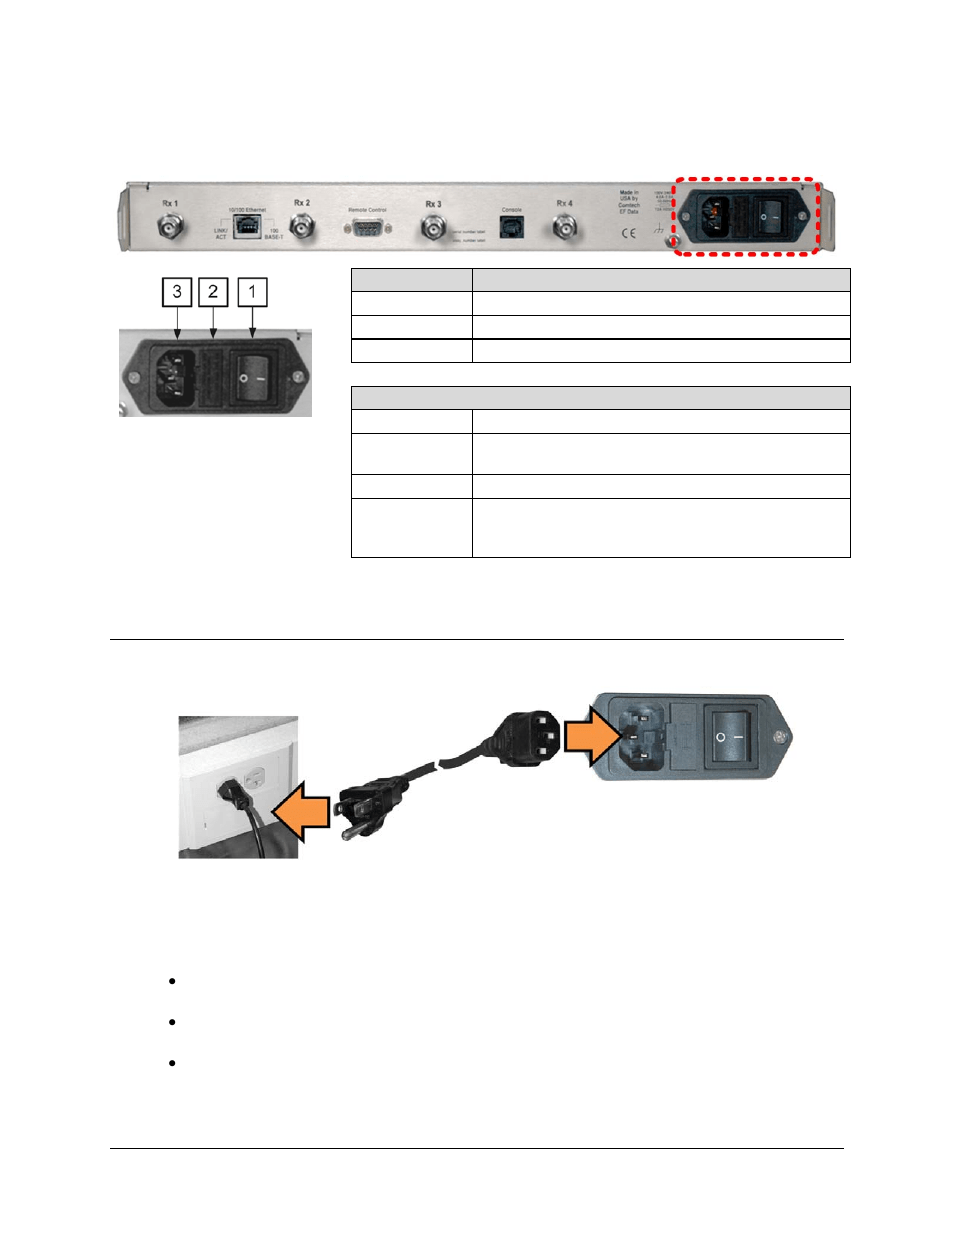 hight resolution of 1 ac operation applying power comtech ef data cdd 562l user manual page 53 254